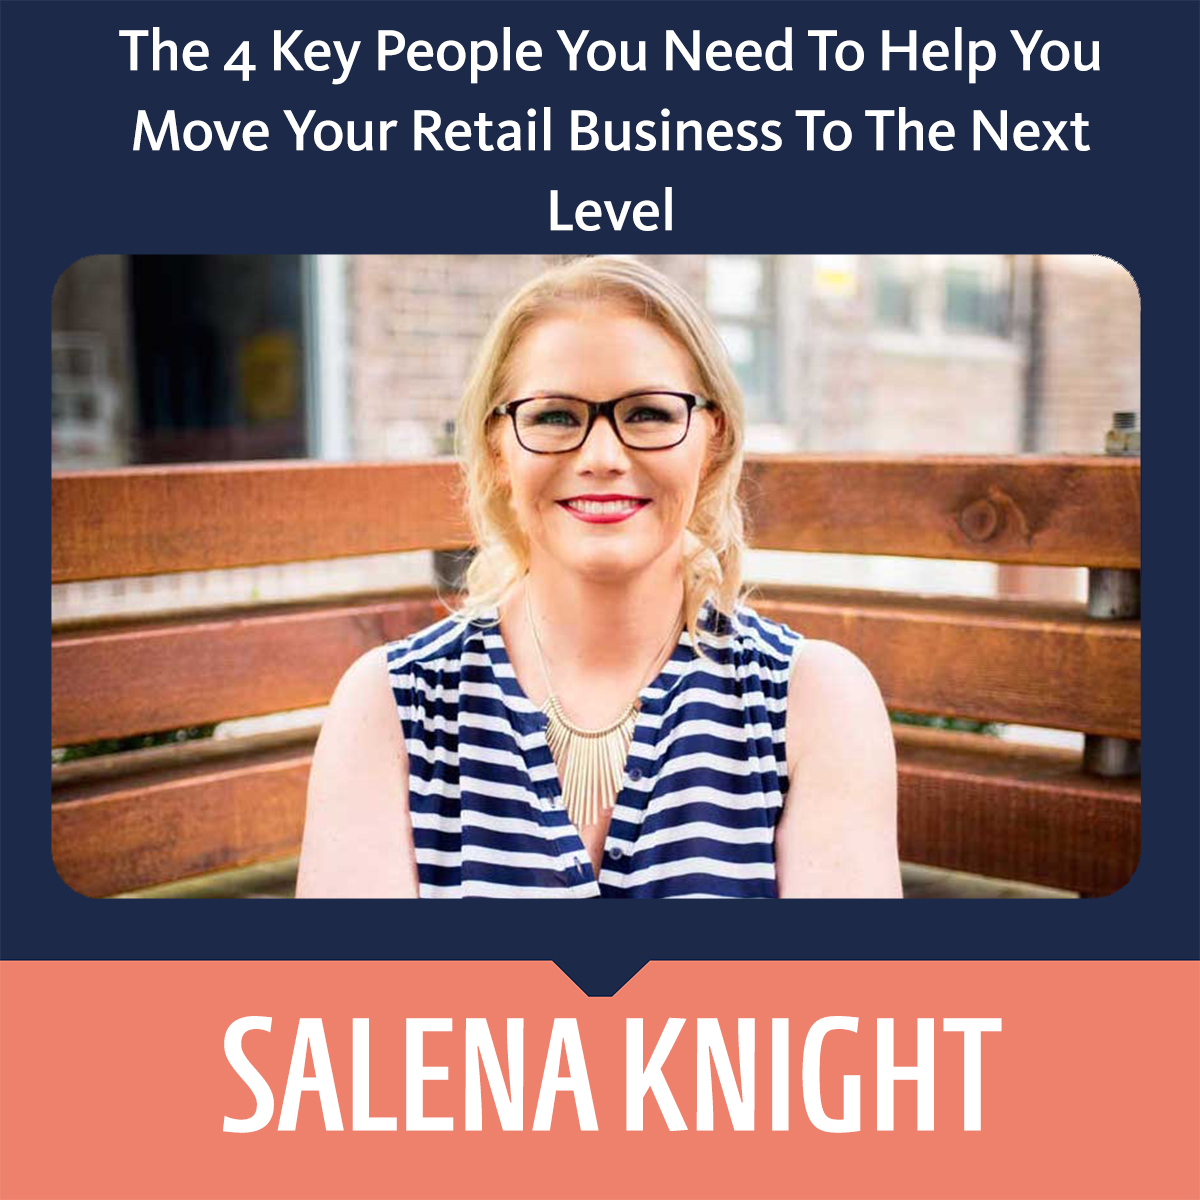 The 4 Key People You Need To Help You Move Your Retail Business To The Next Level square